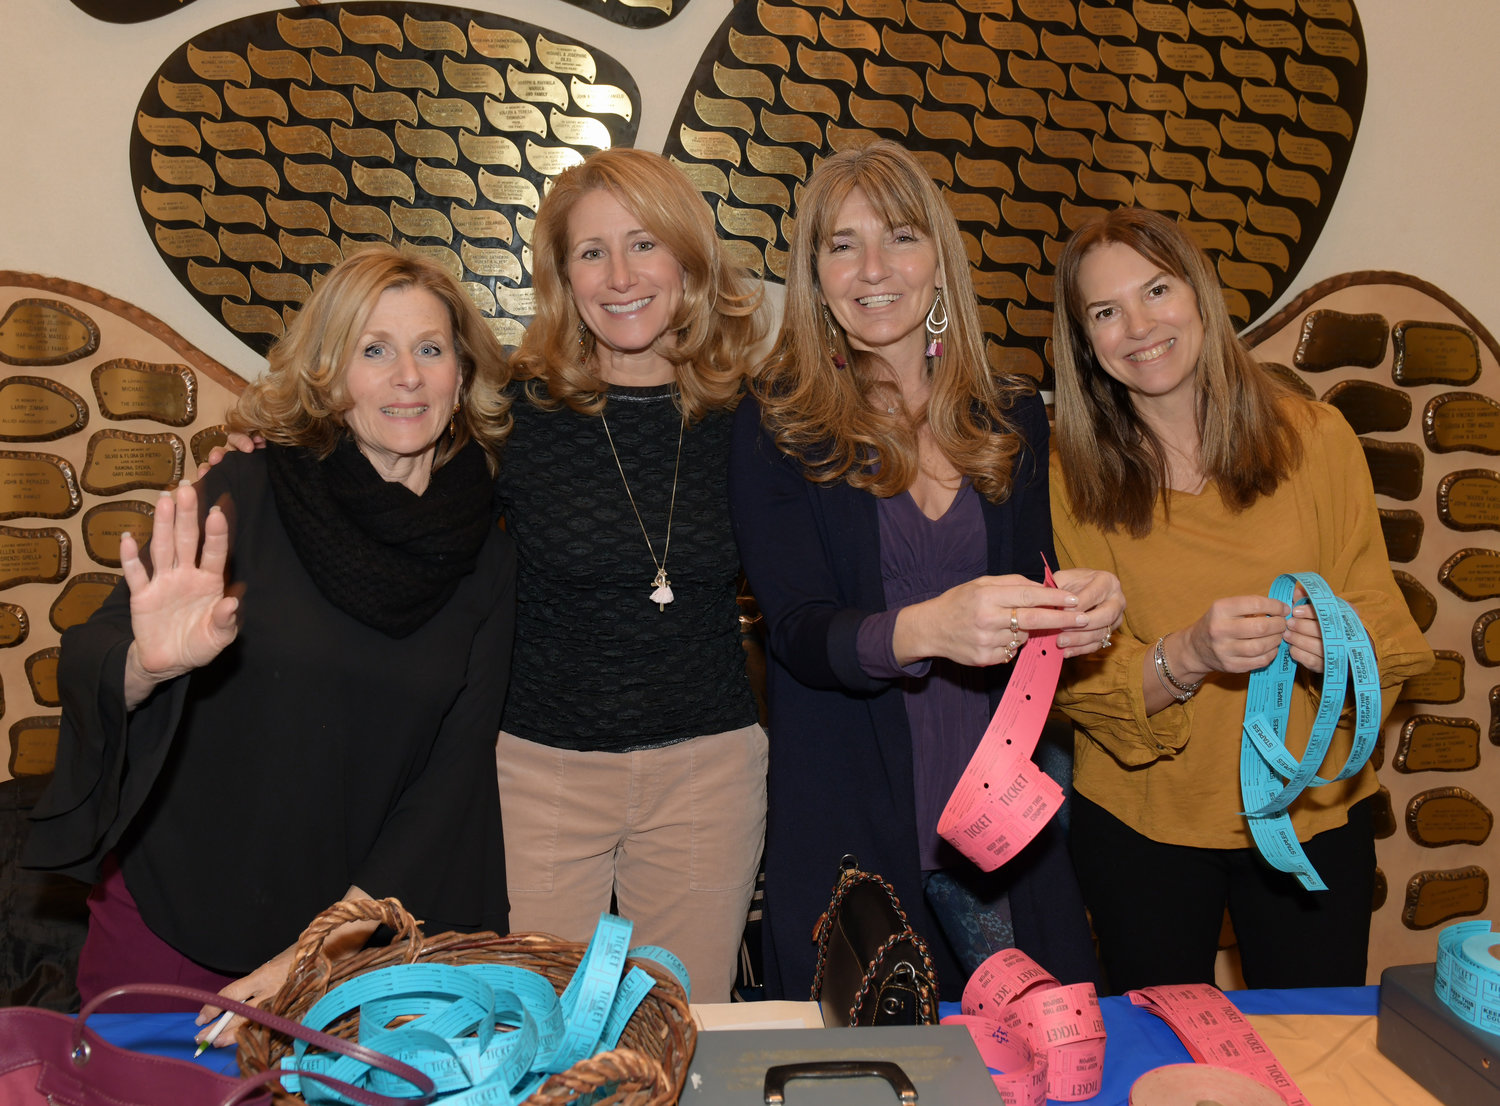 Volunteers selling raffle tickets included, from left, Pamela Panzenbeck, Coleen Spinello, Lisa Travetello and Diane Bruschini.